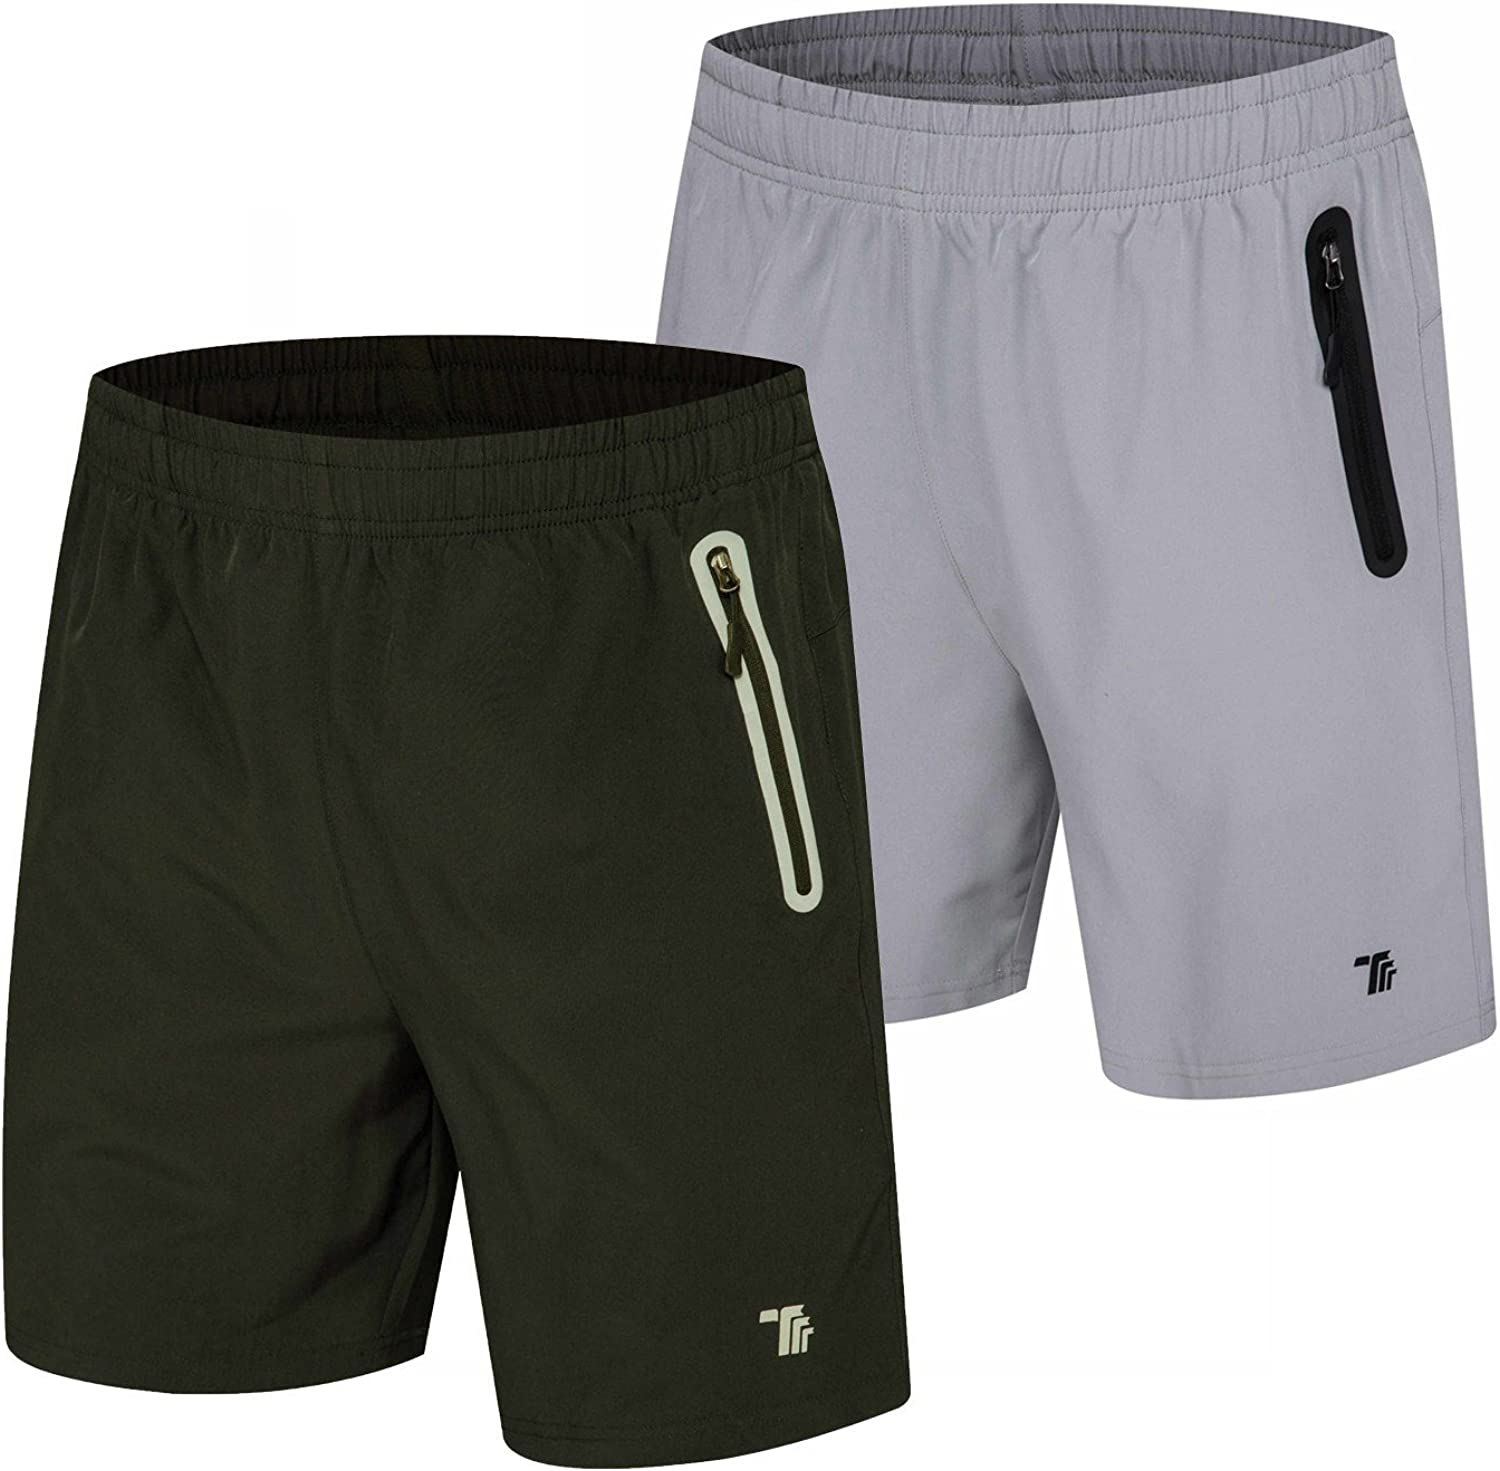 TBMPOY Men's 7'' Athletic Running Shorts Quick Dry Shorts with Zipper Pockets